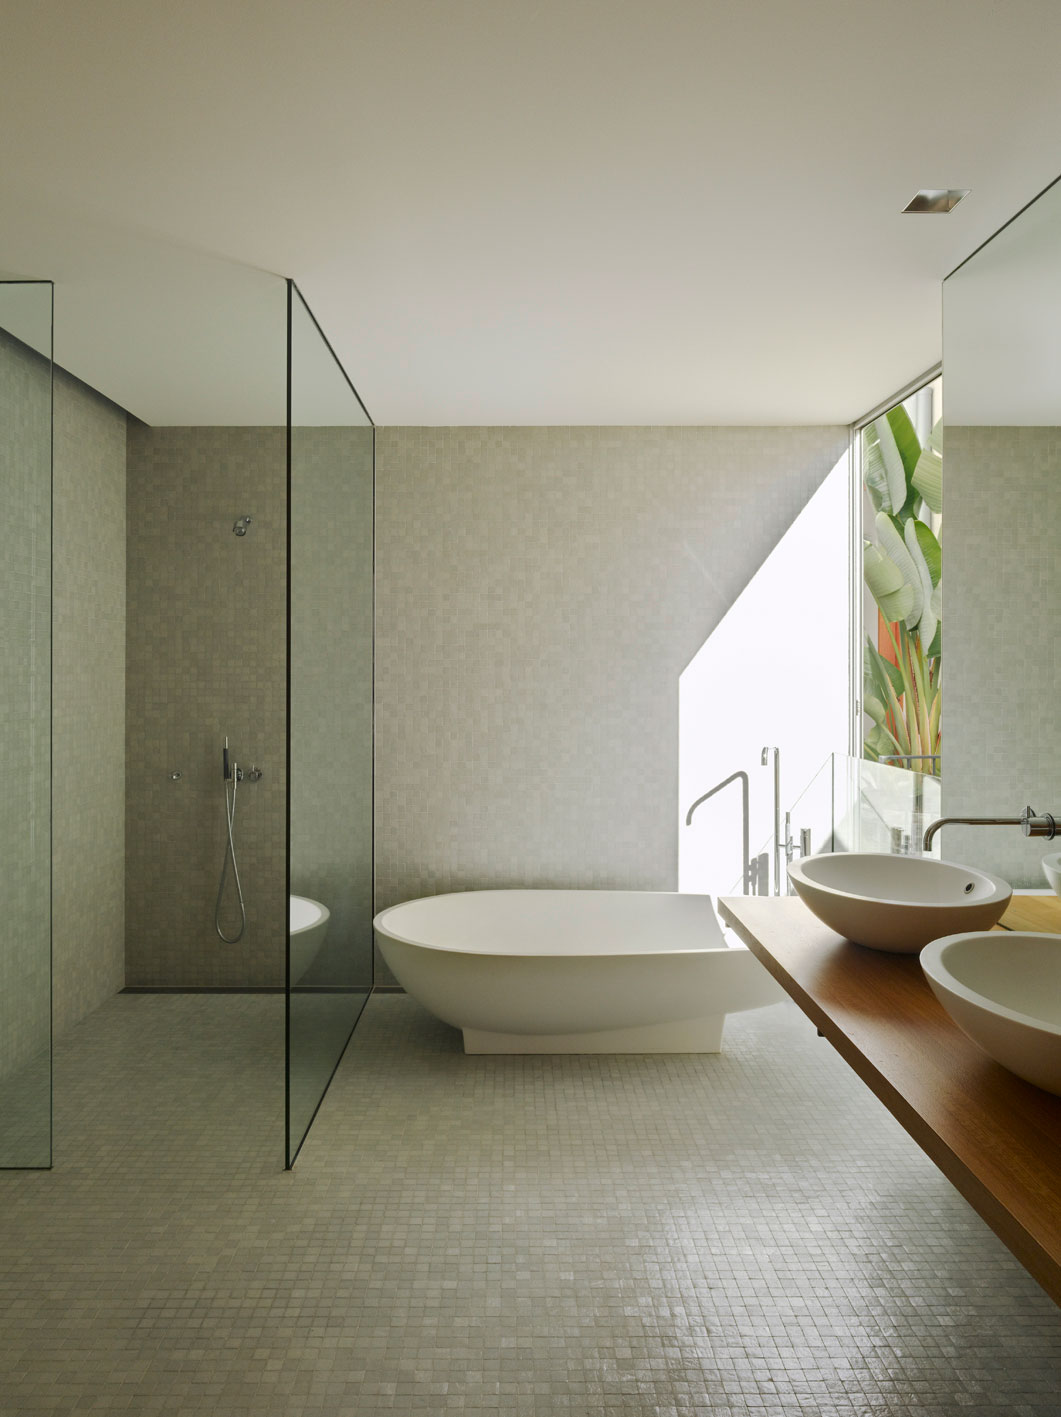 Bathroom design pivotech for Bathroom interior design pictures